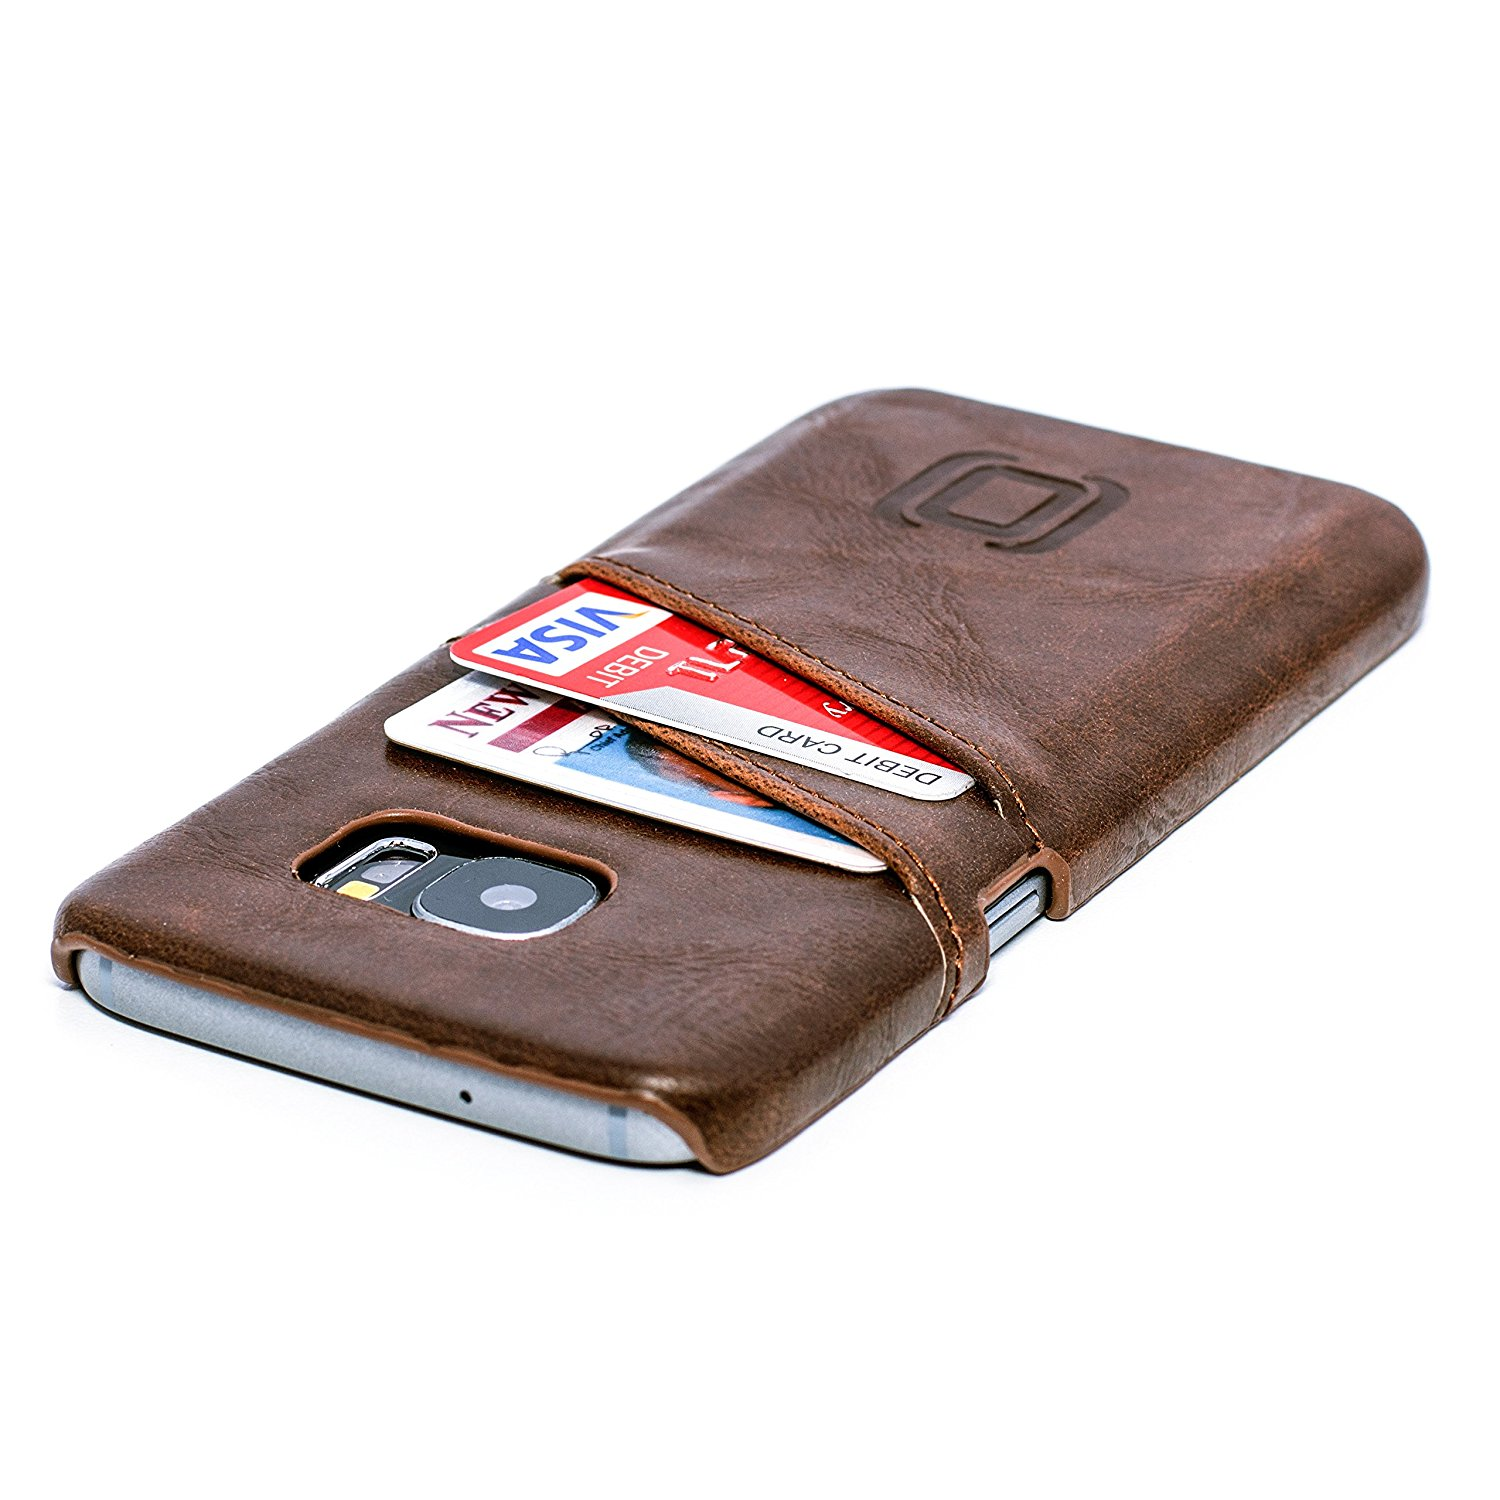 separation shoes 13fbf eb520 Samsung Galaxy S7 Card Case by Dockem- Vintage Synthetic Leather ...